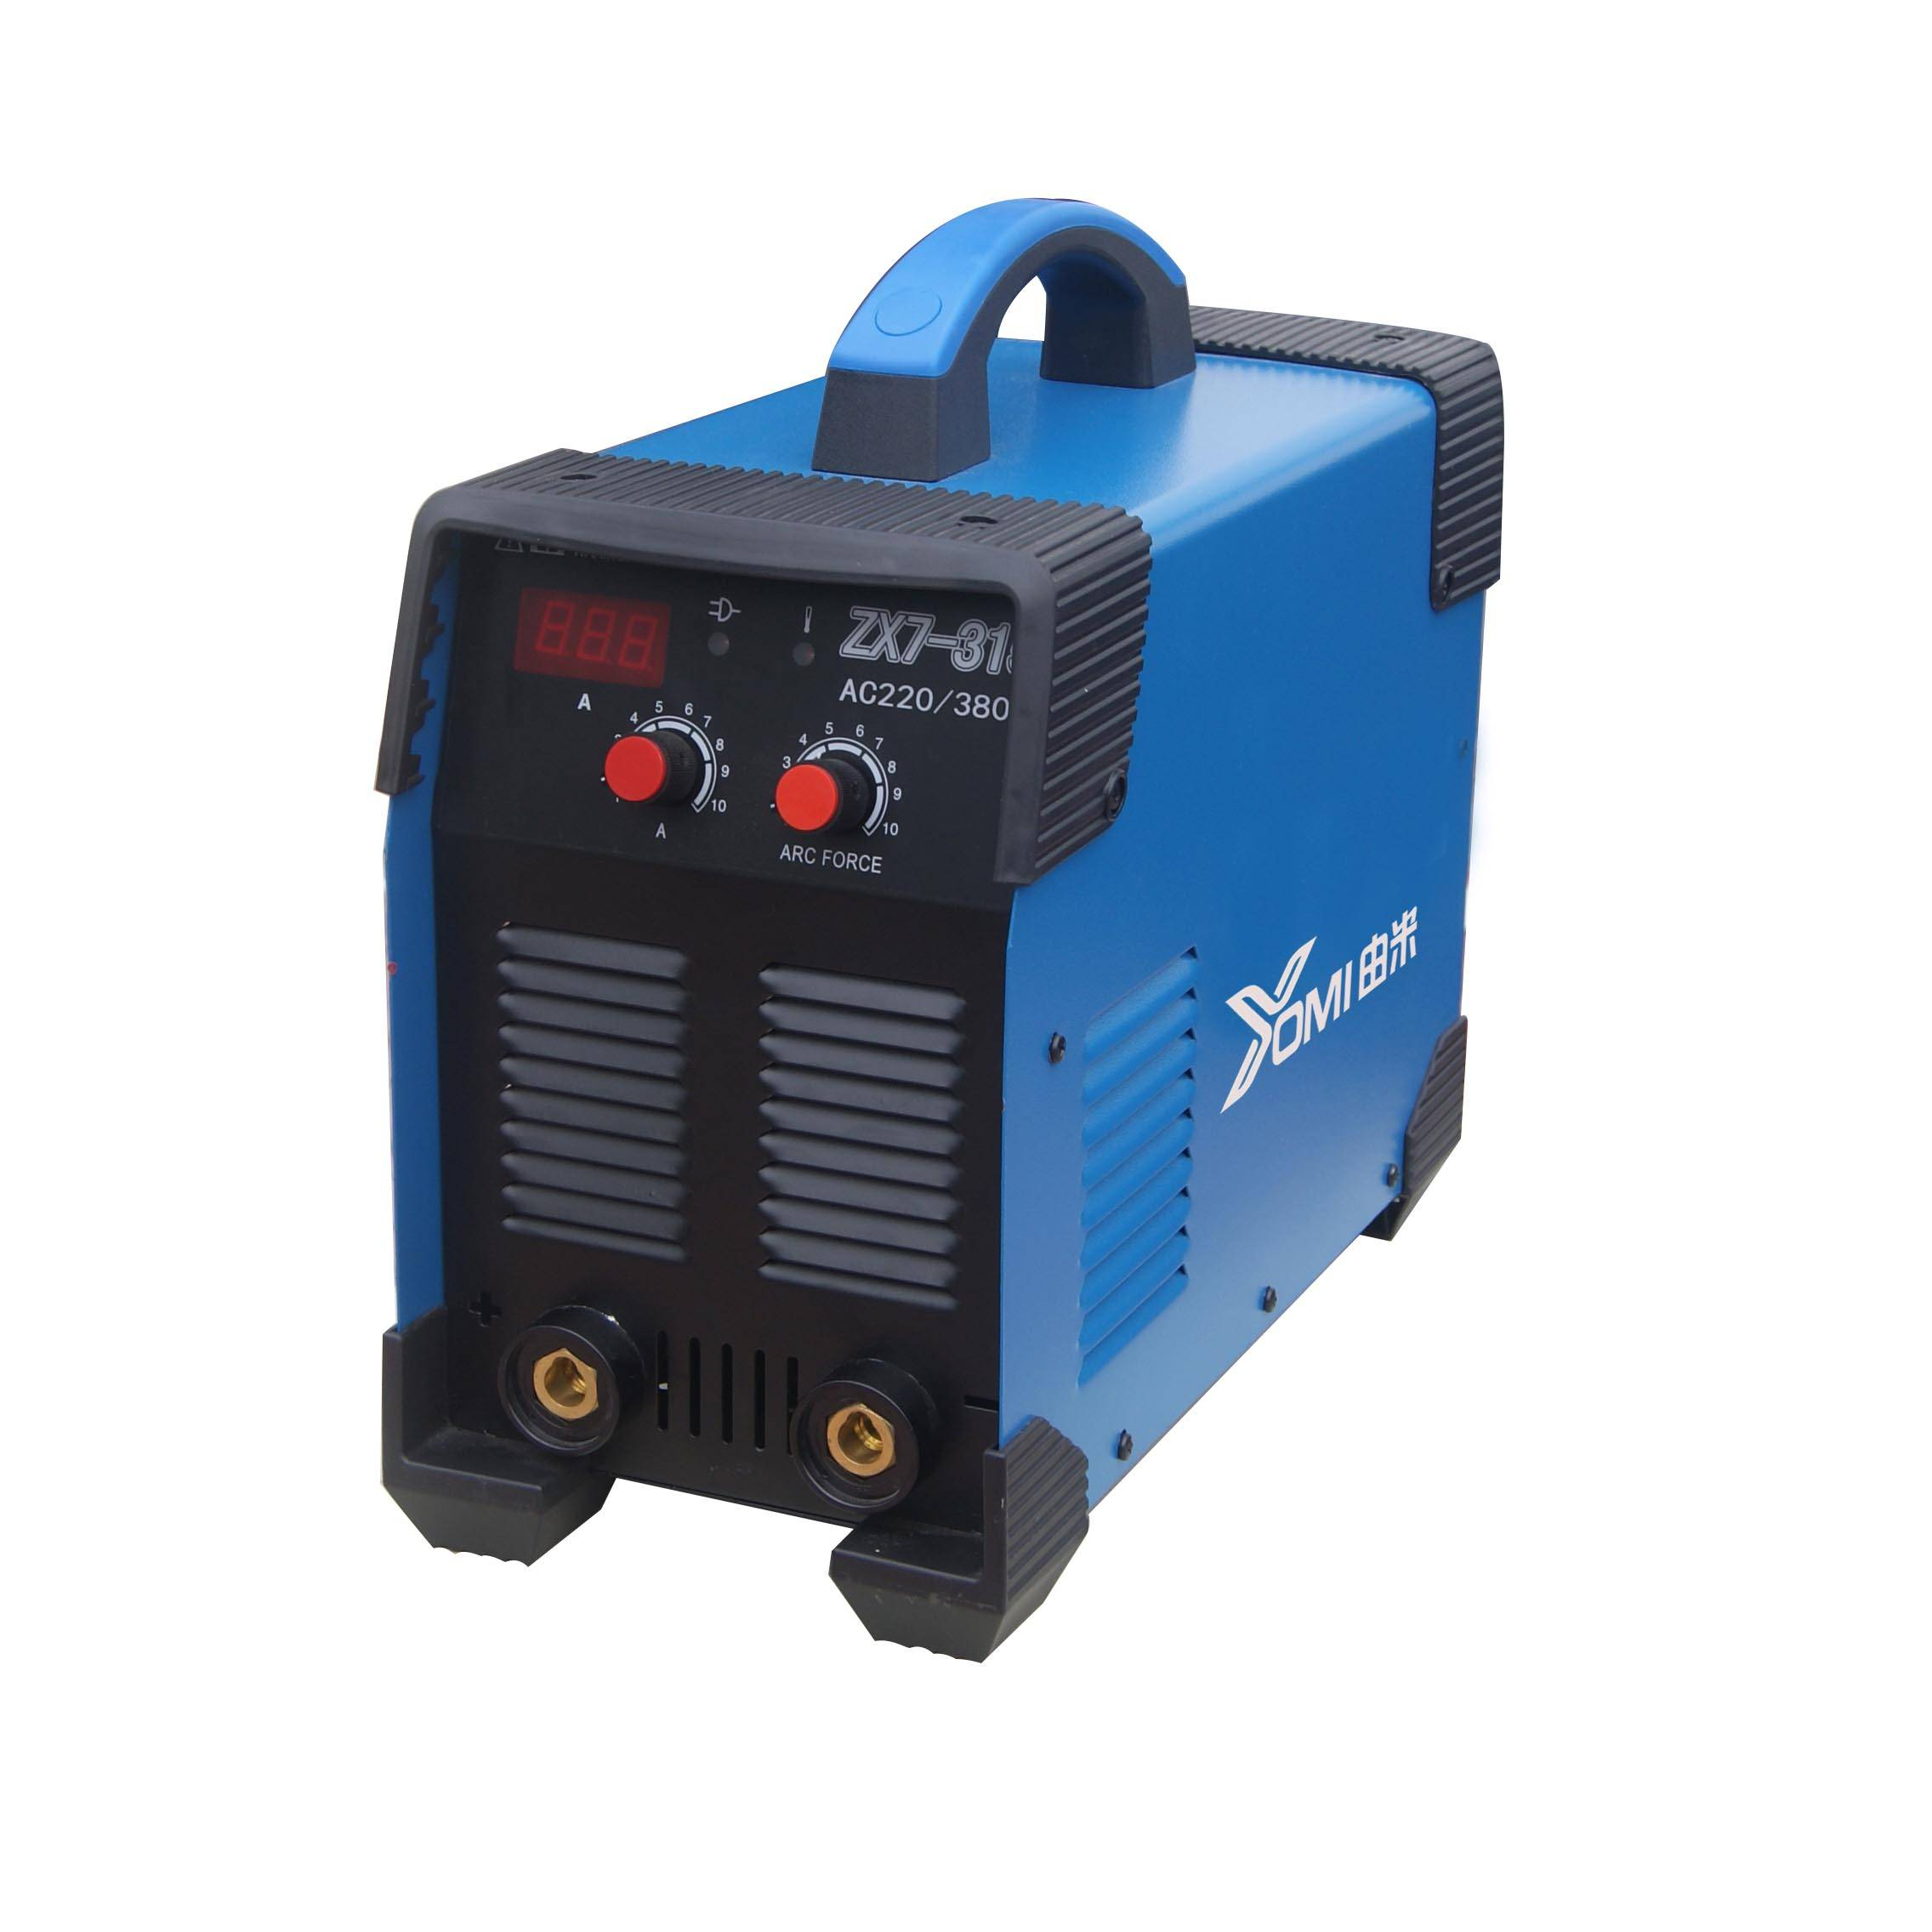 Supply OEM/ODM Pipe Welding Rotator -